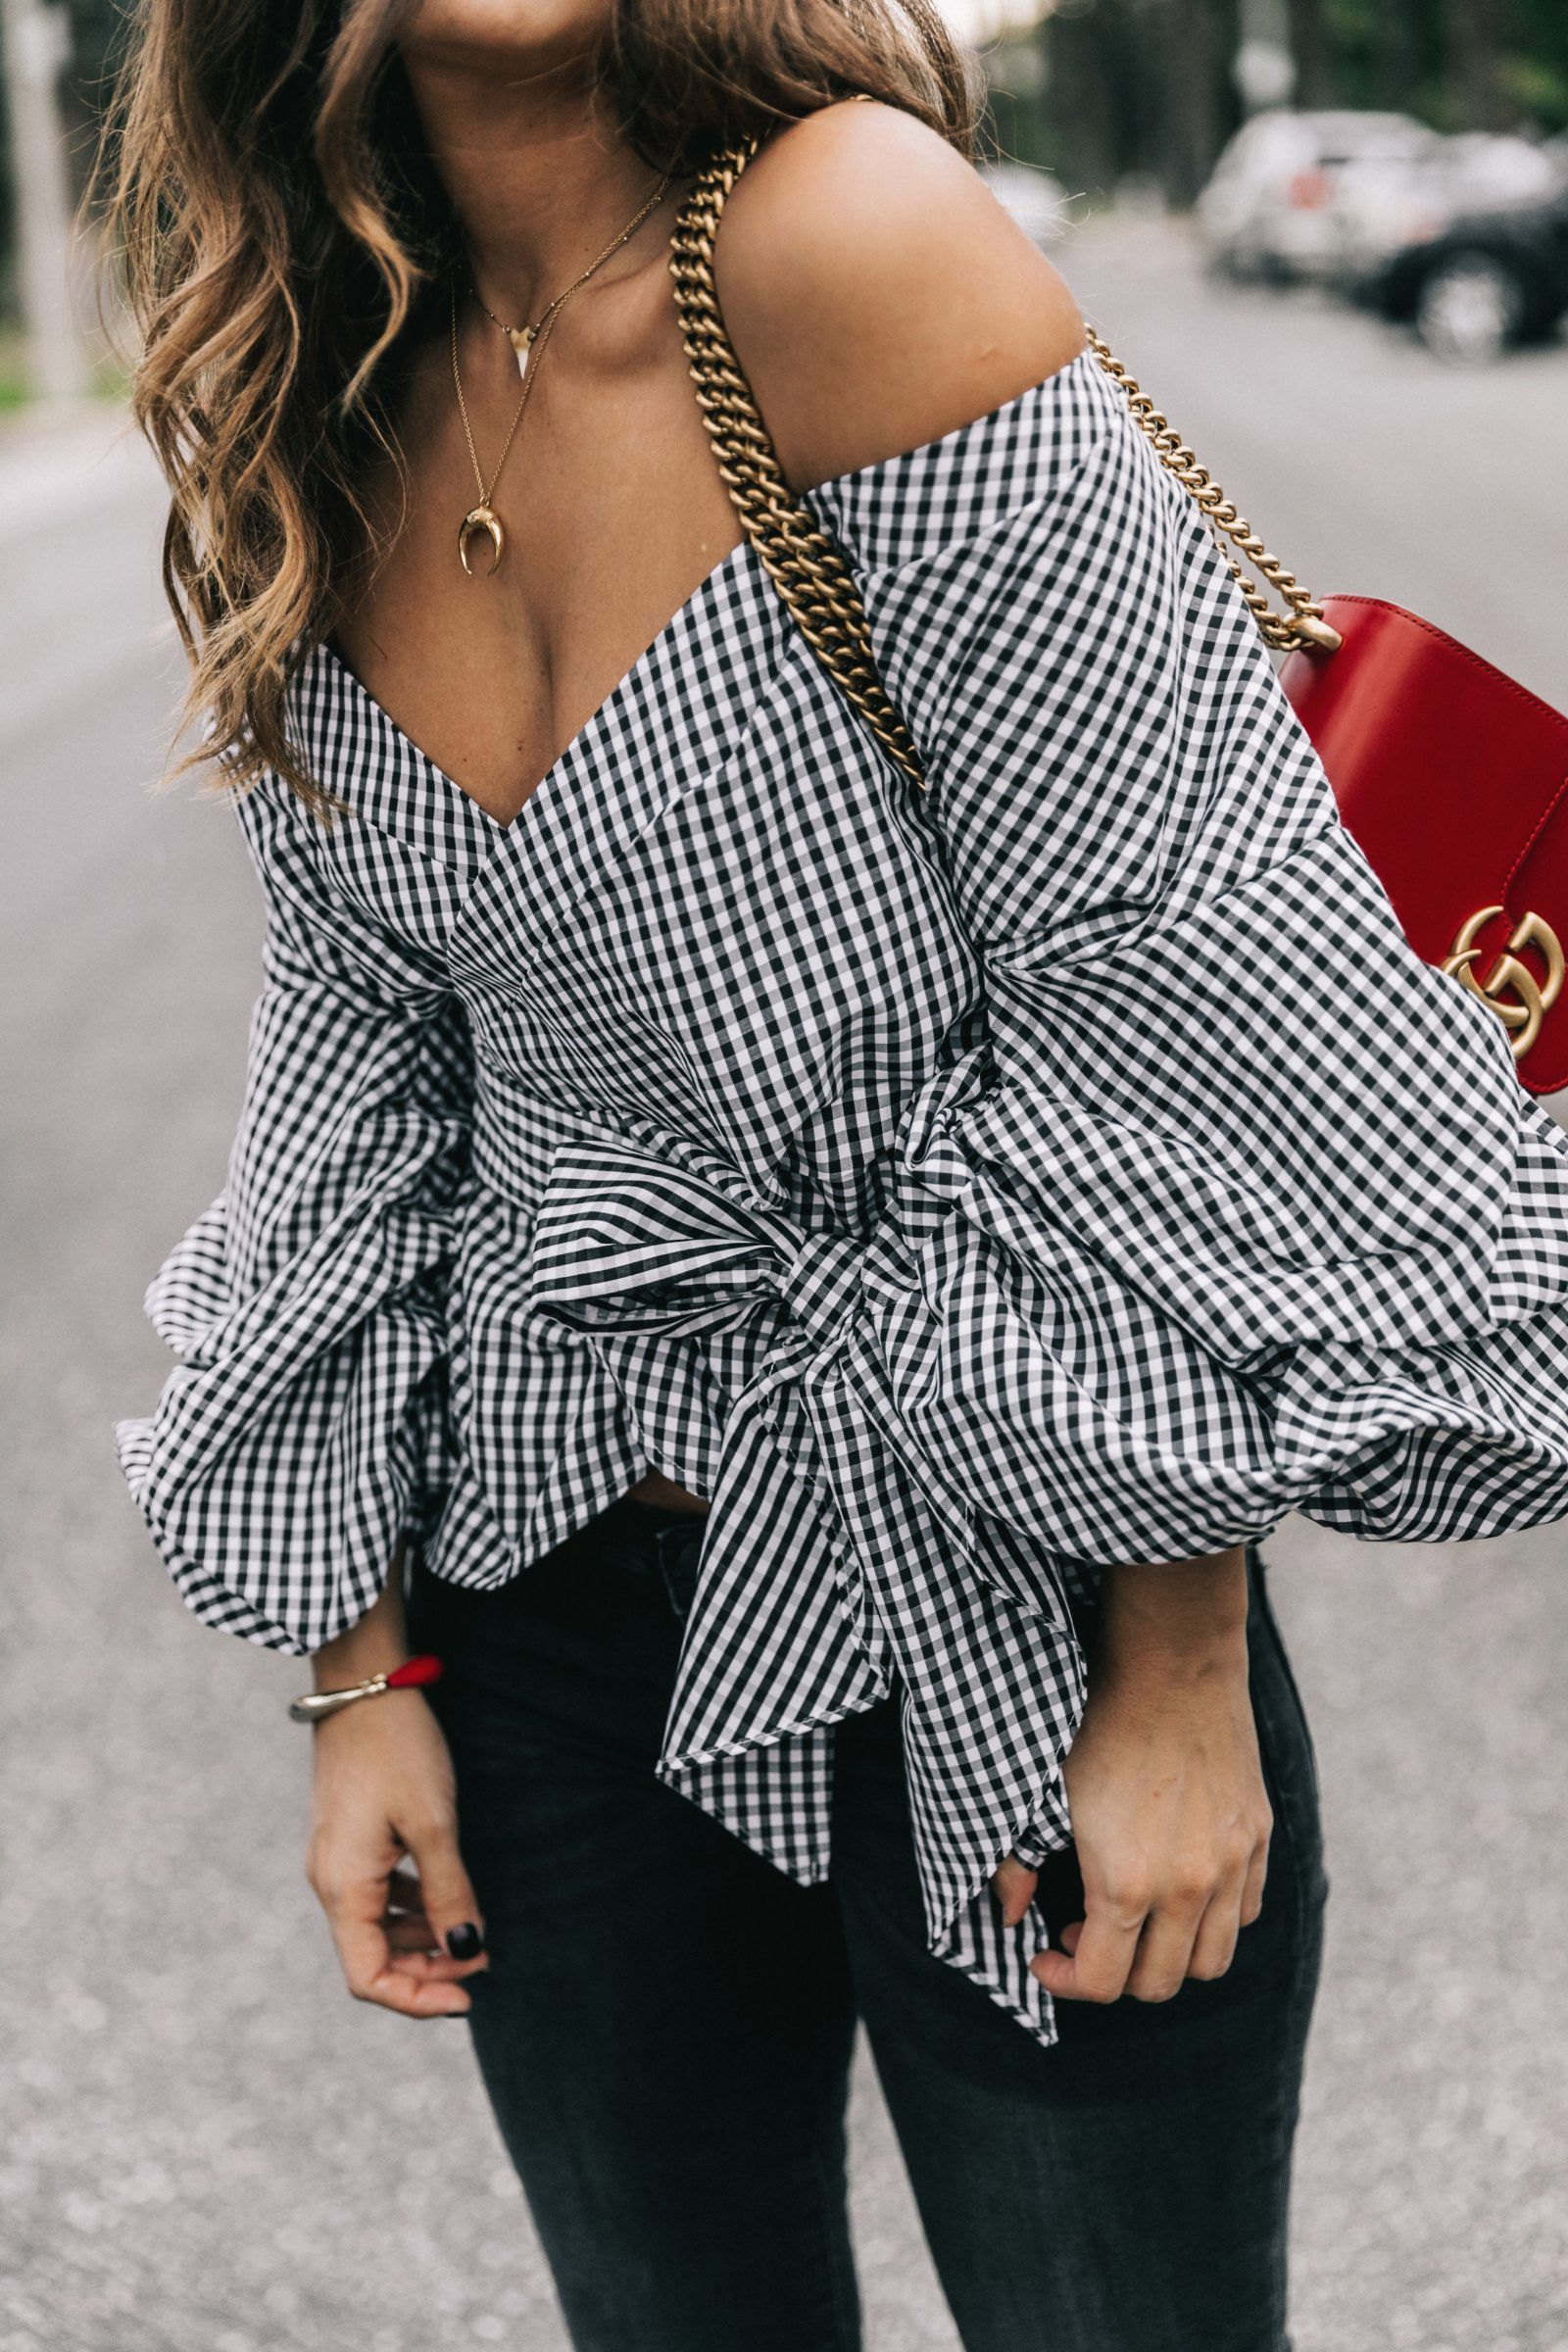 I hate the gingham but I love the style of the blouse